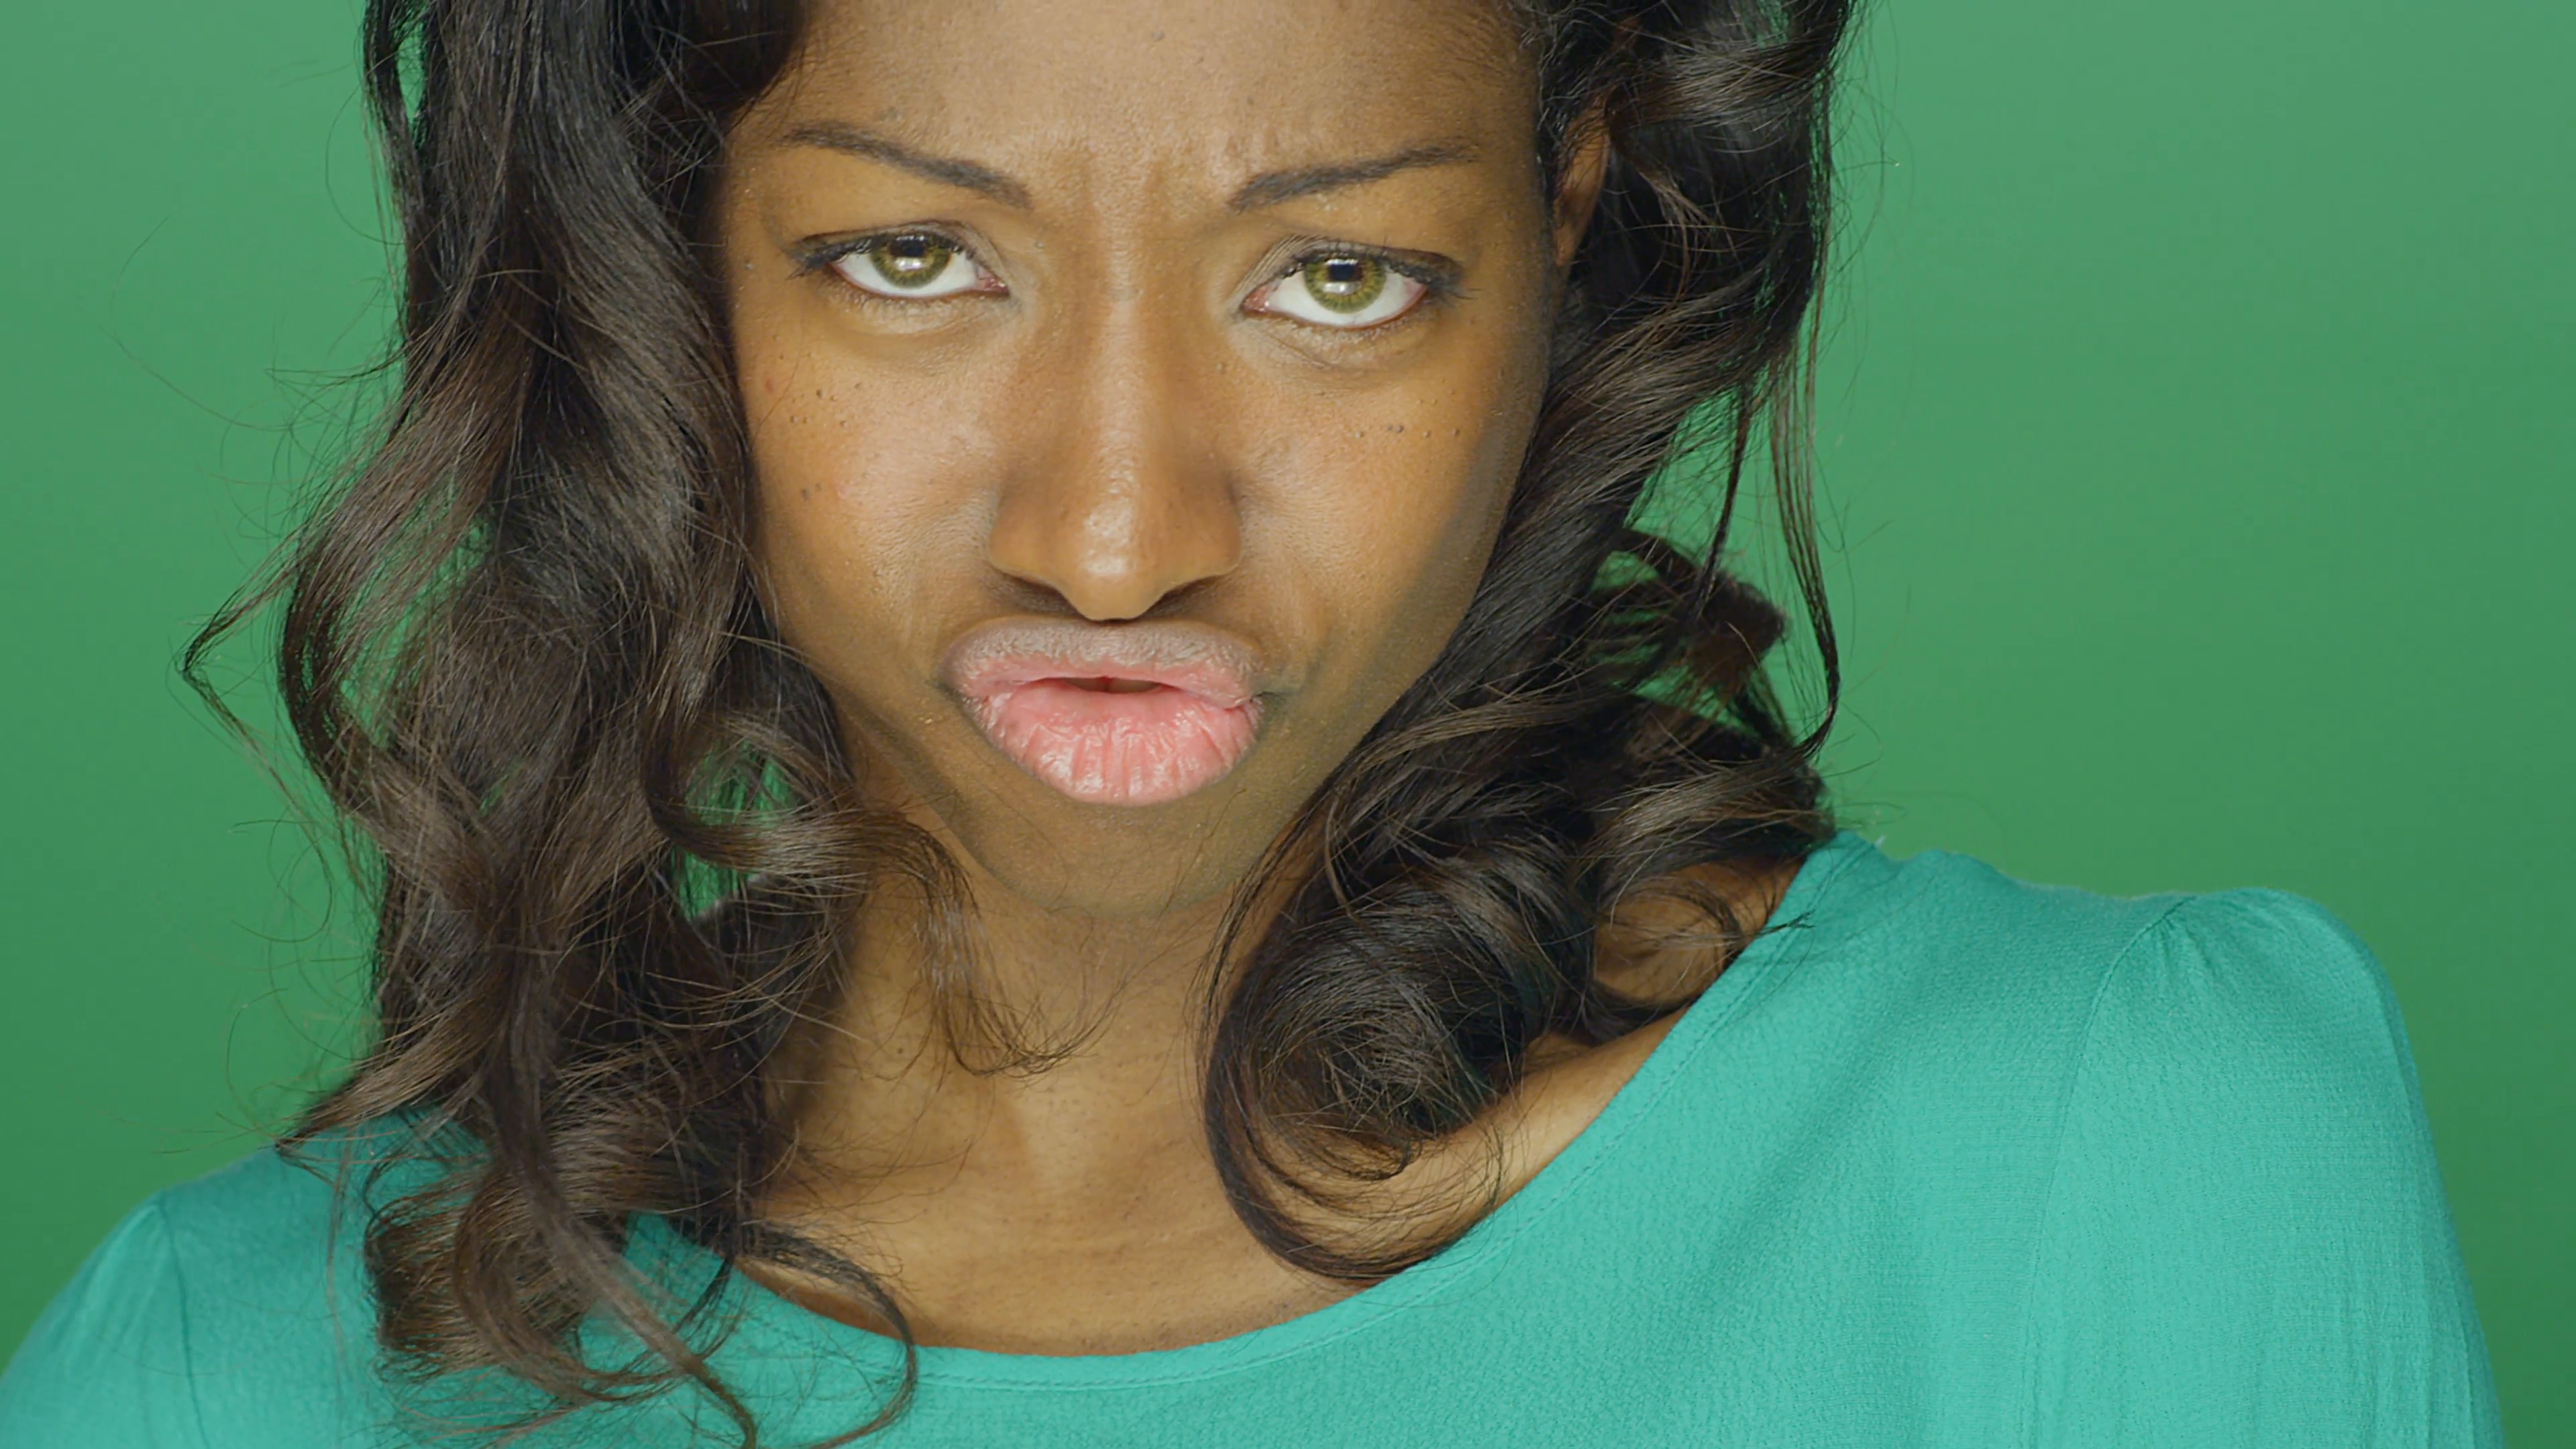 Silly Girl Face Png - Beautiful African American woman making silly faces and a fish ...